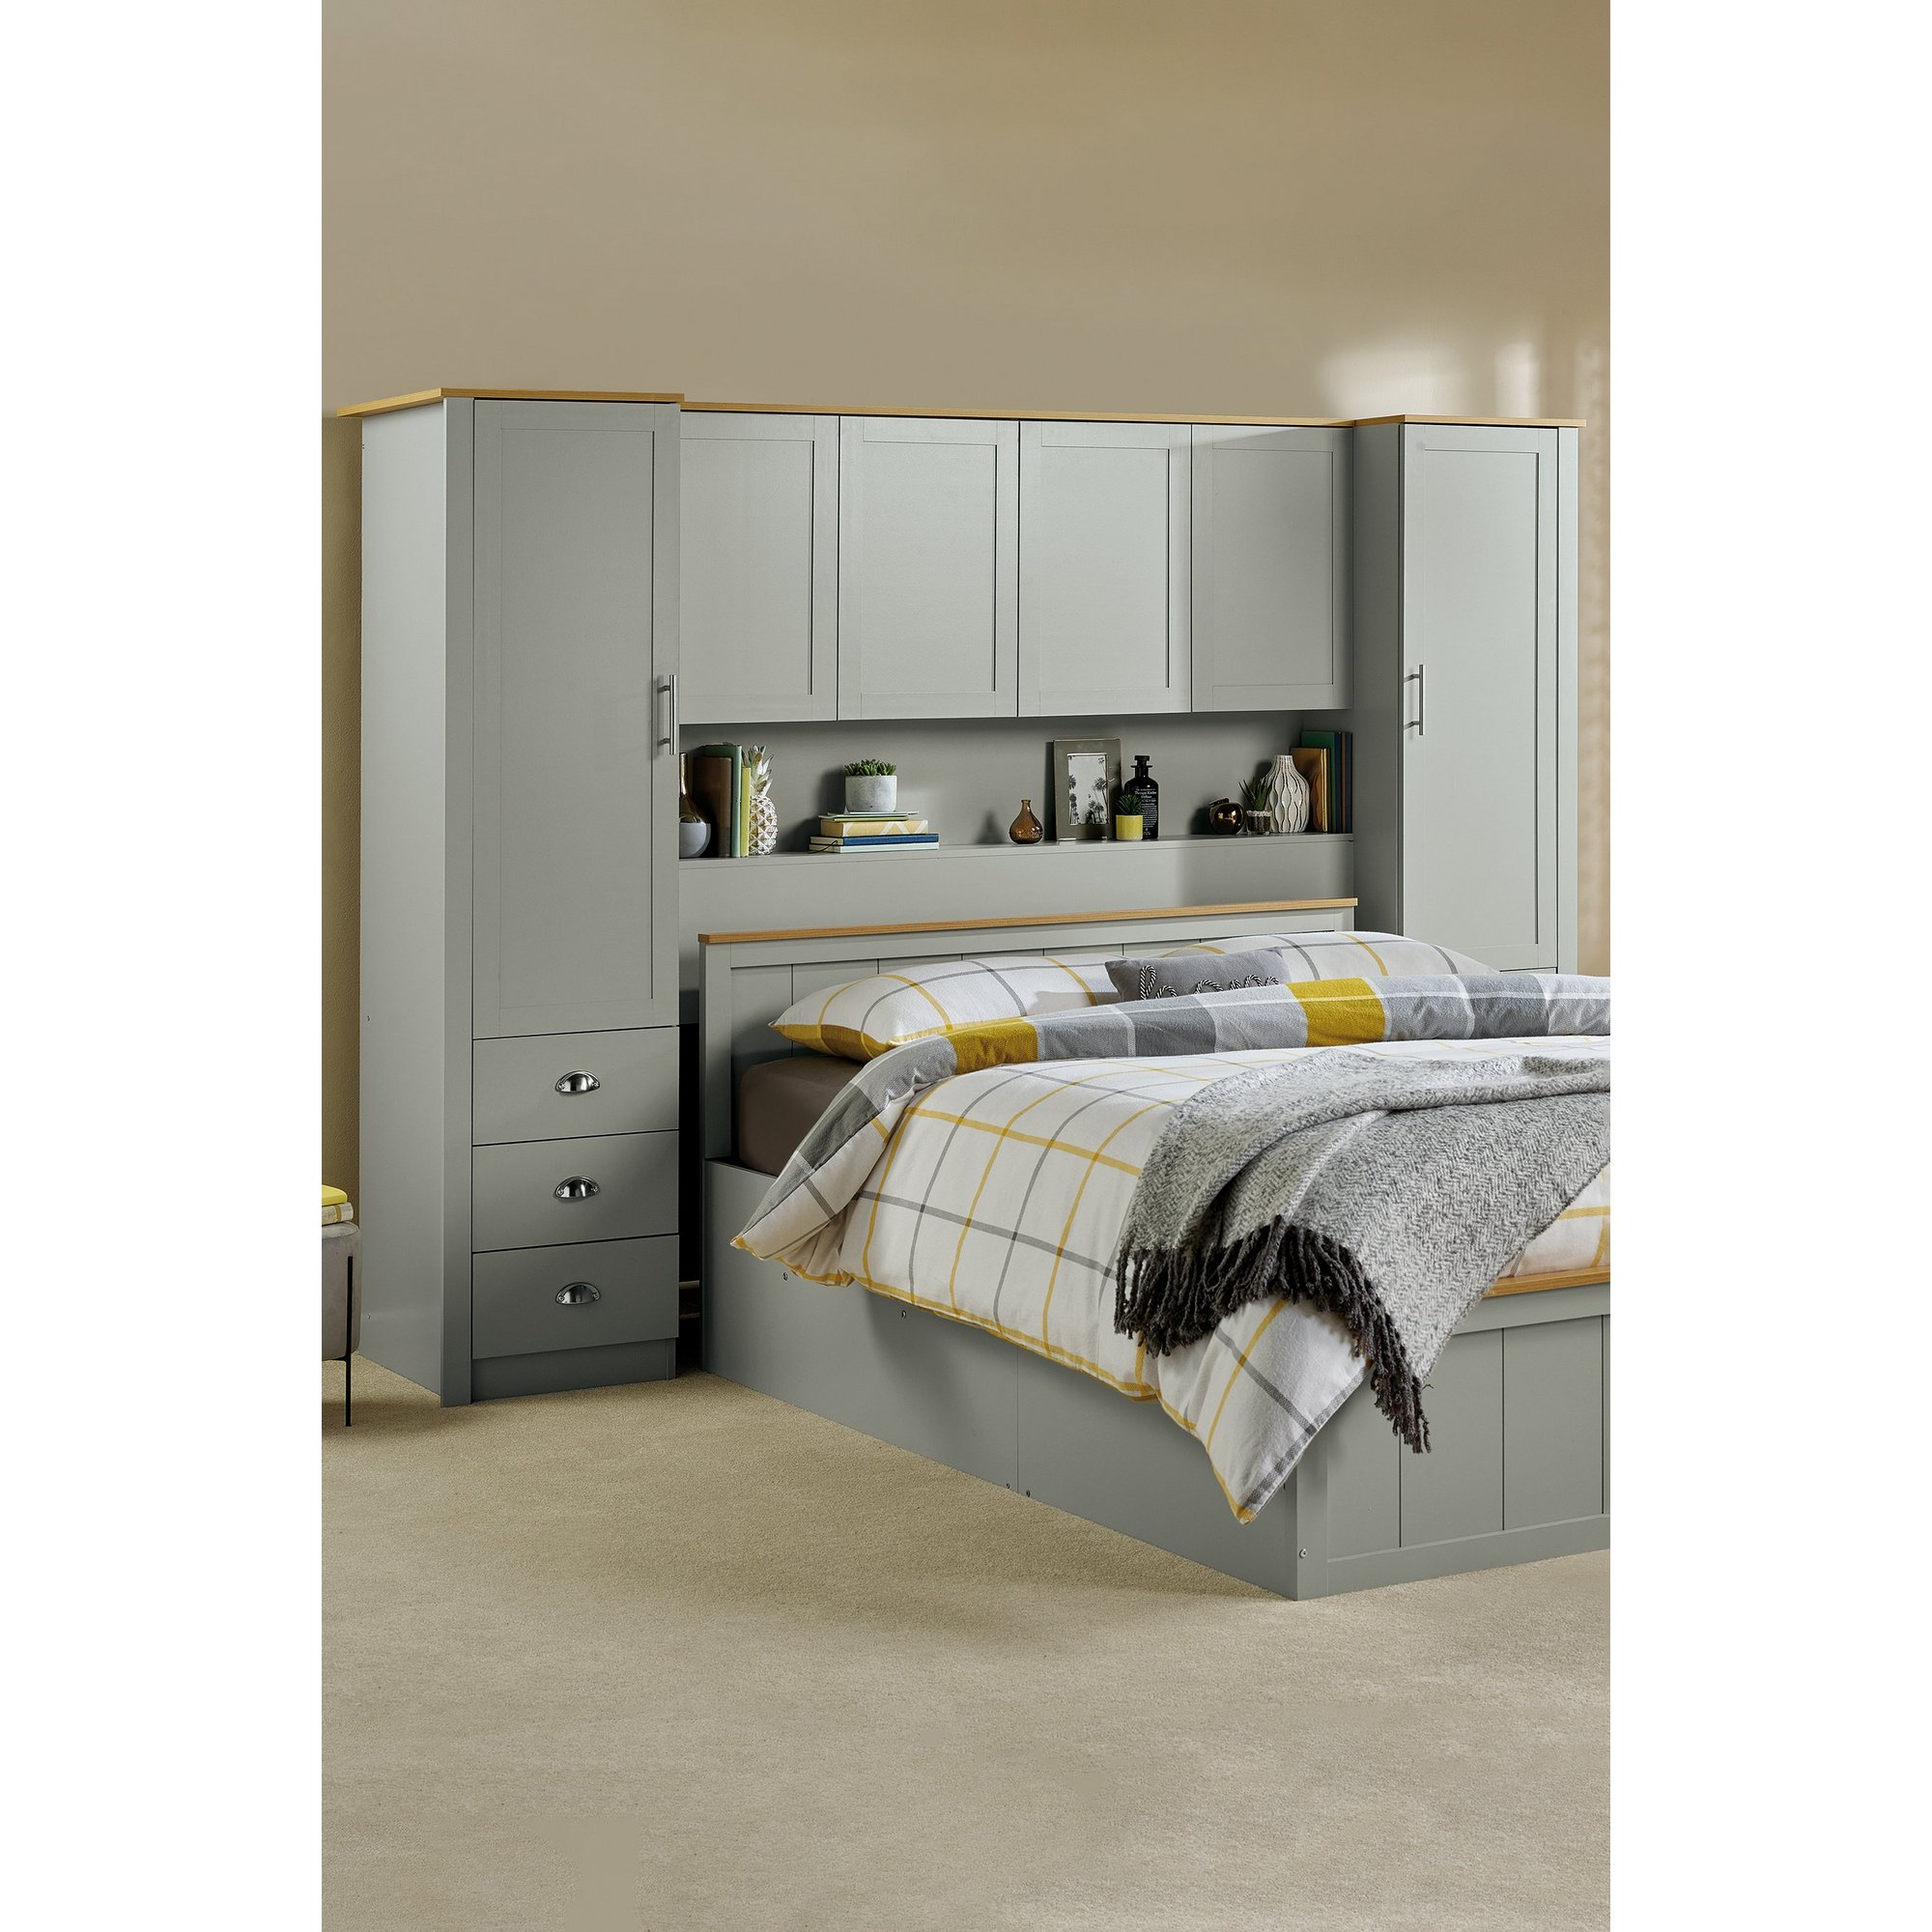 Image of Lancaster Overbed Storage Unit